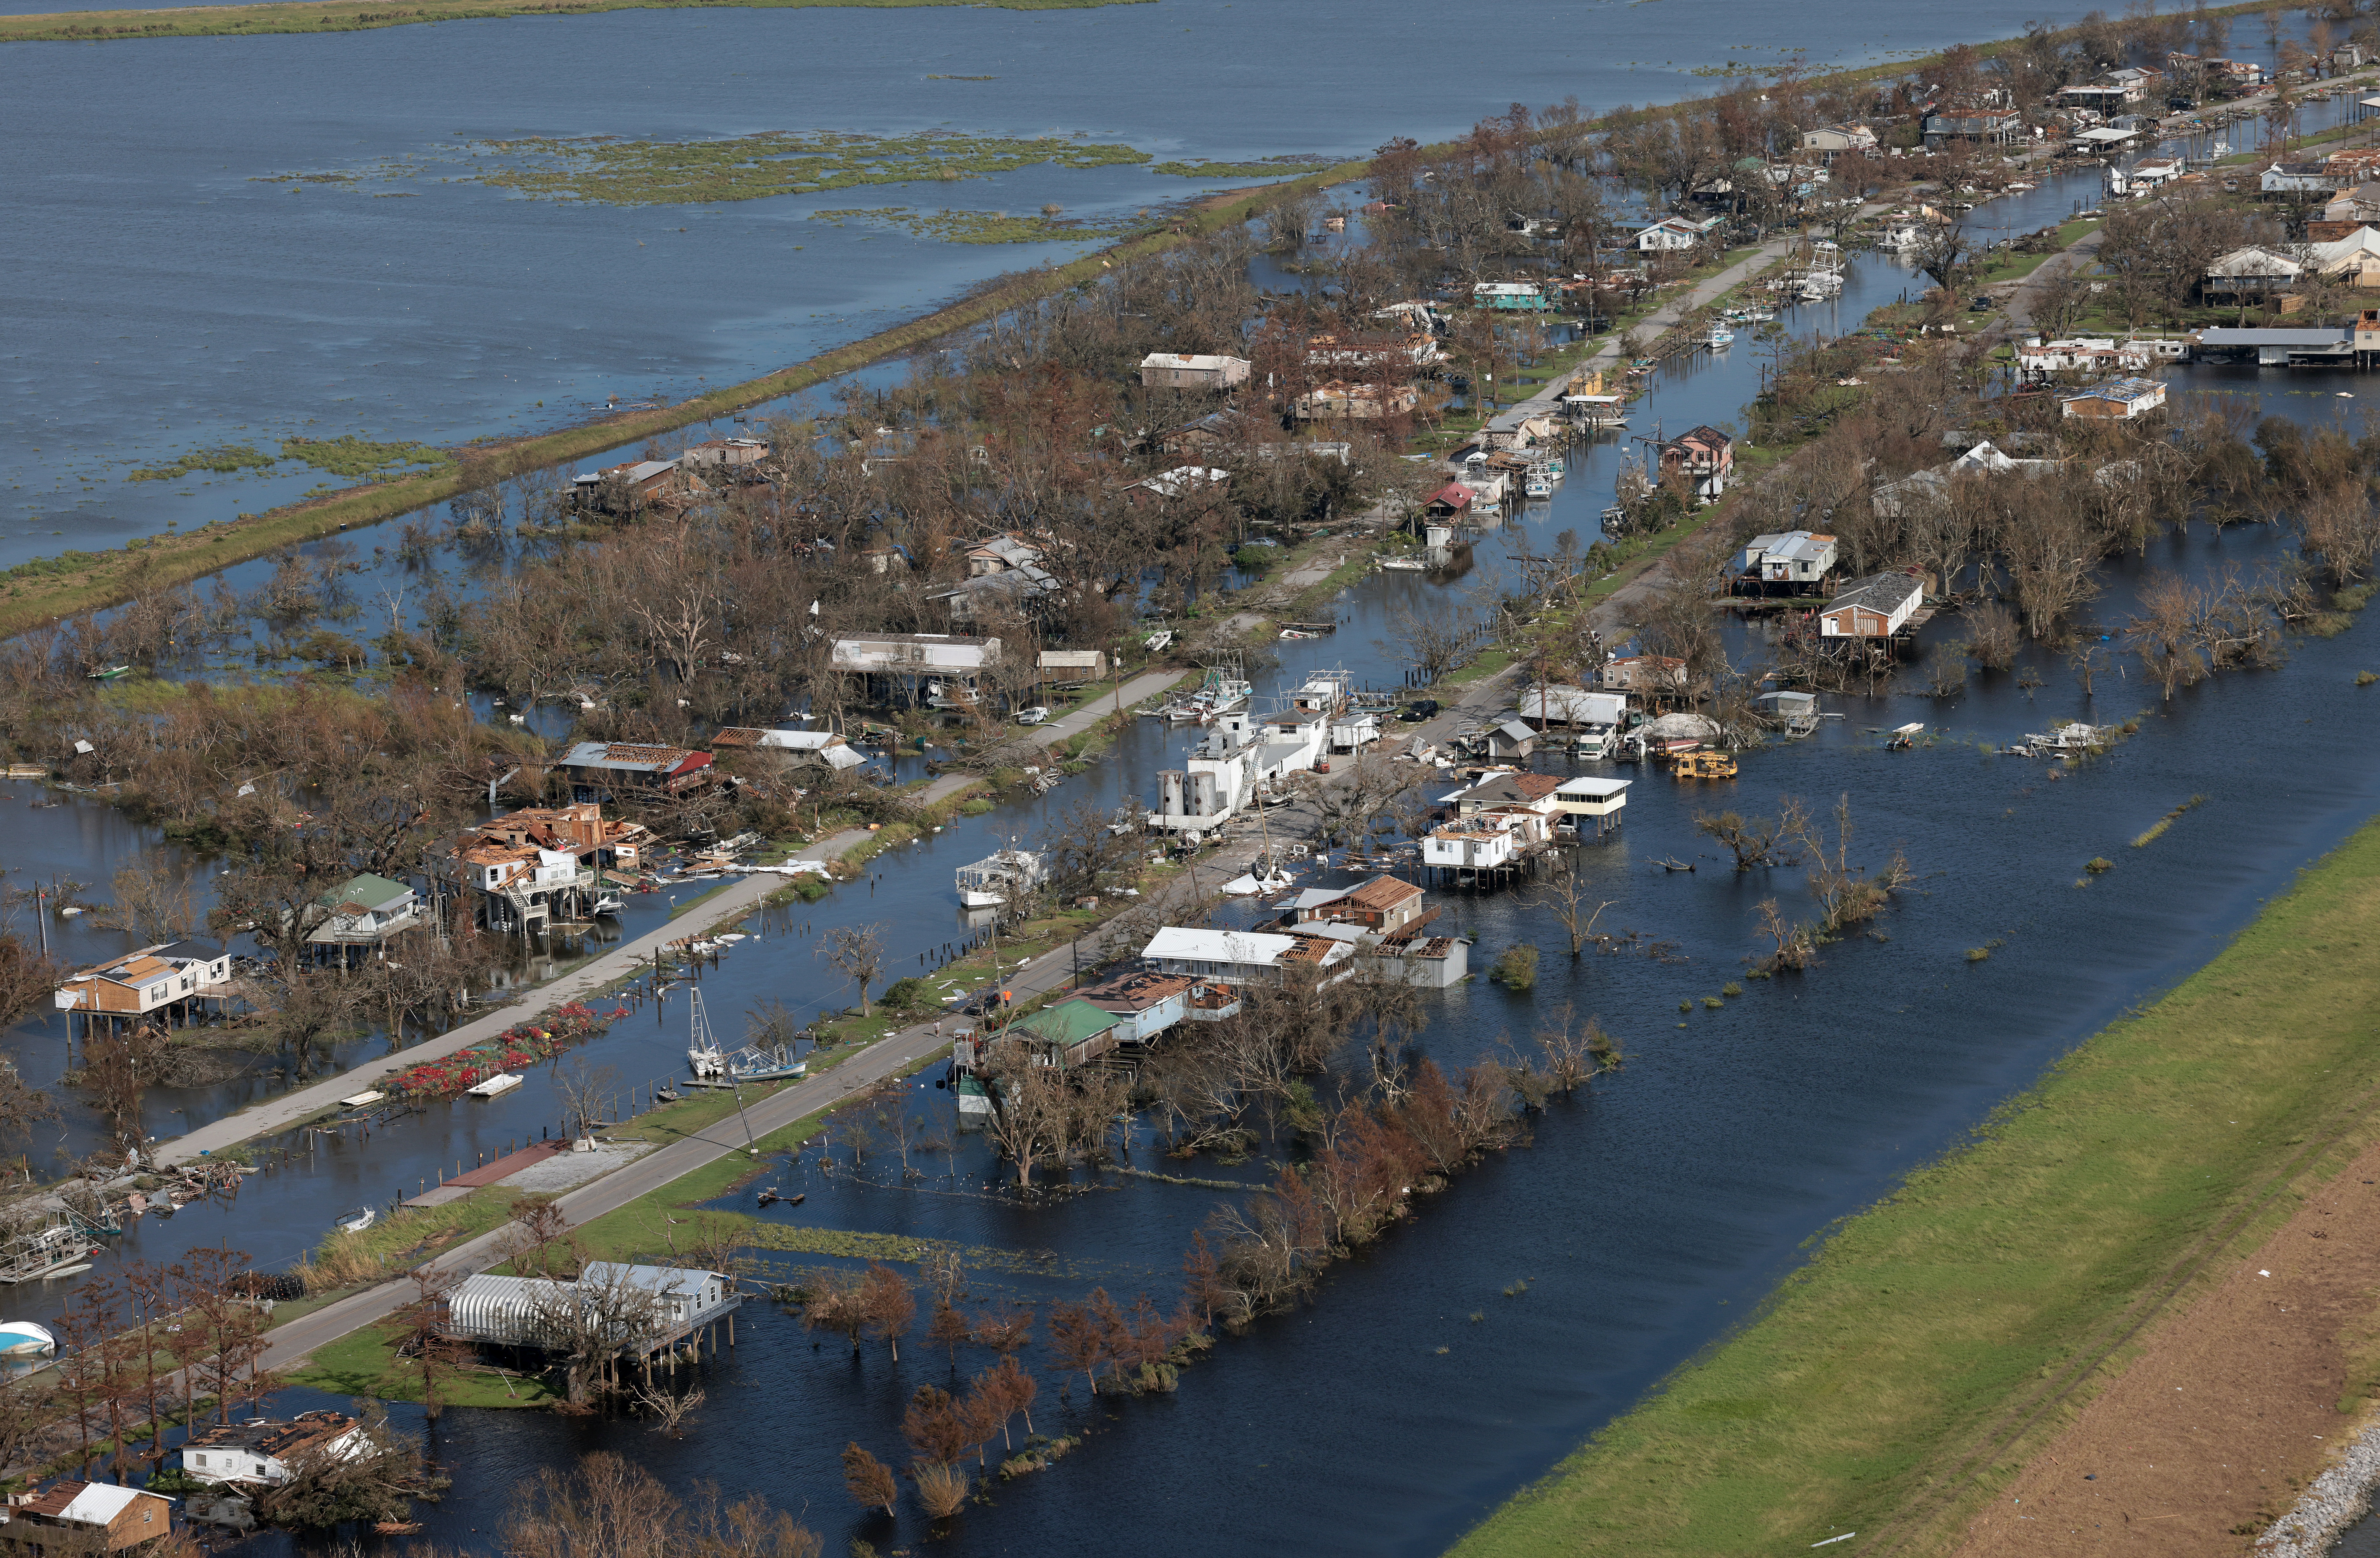 Destruction is left in the wake of Hurricane Ida on Aug. 31, 2021 near Point-Aux-Chenes, Louisiana. Ida made landfall Aug. 29 as a Category 4 storm southwest of New Orleans, causing widespread power outages, flooding and massive damage. Creidt: Win McNamee/Getty Images